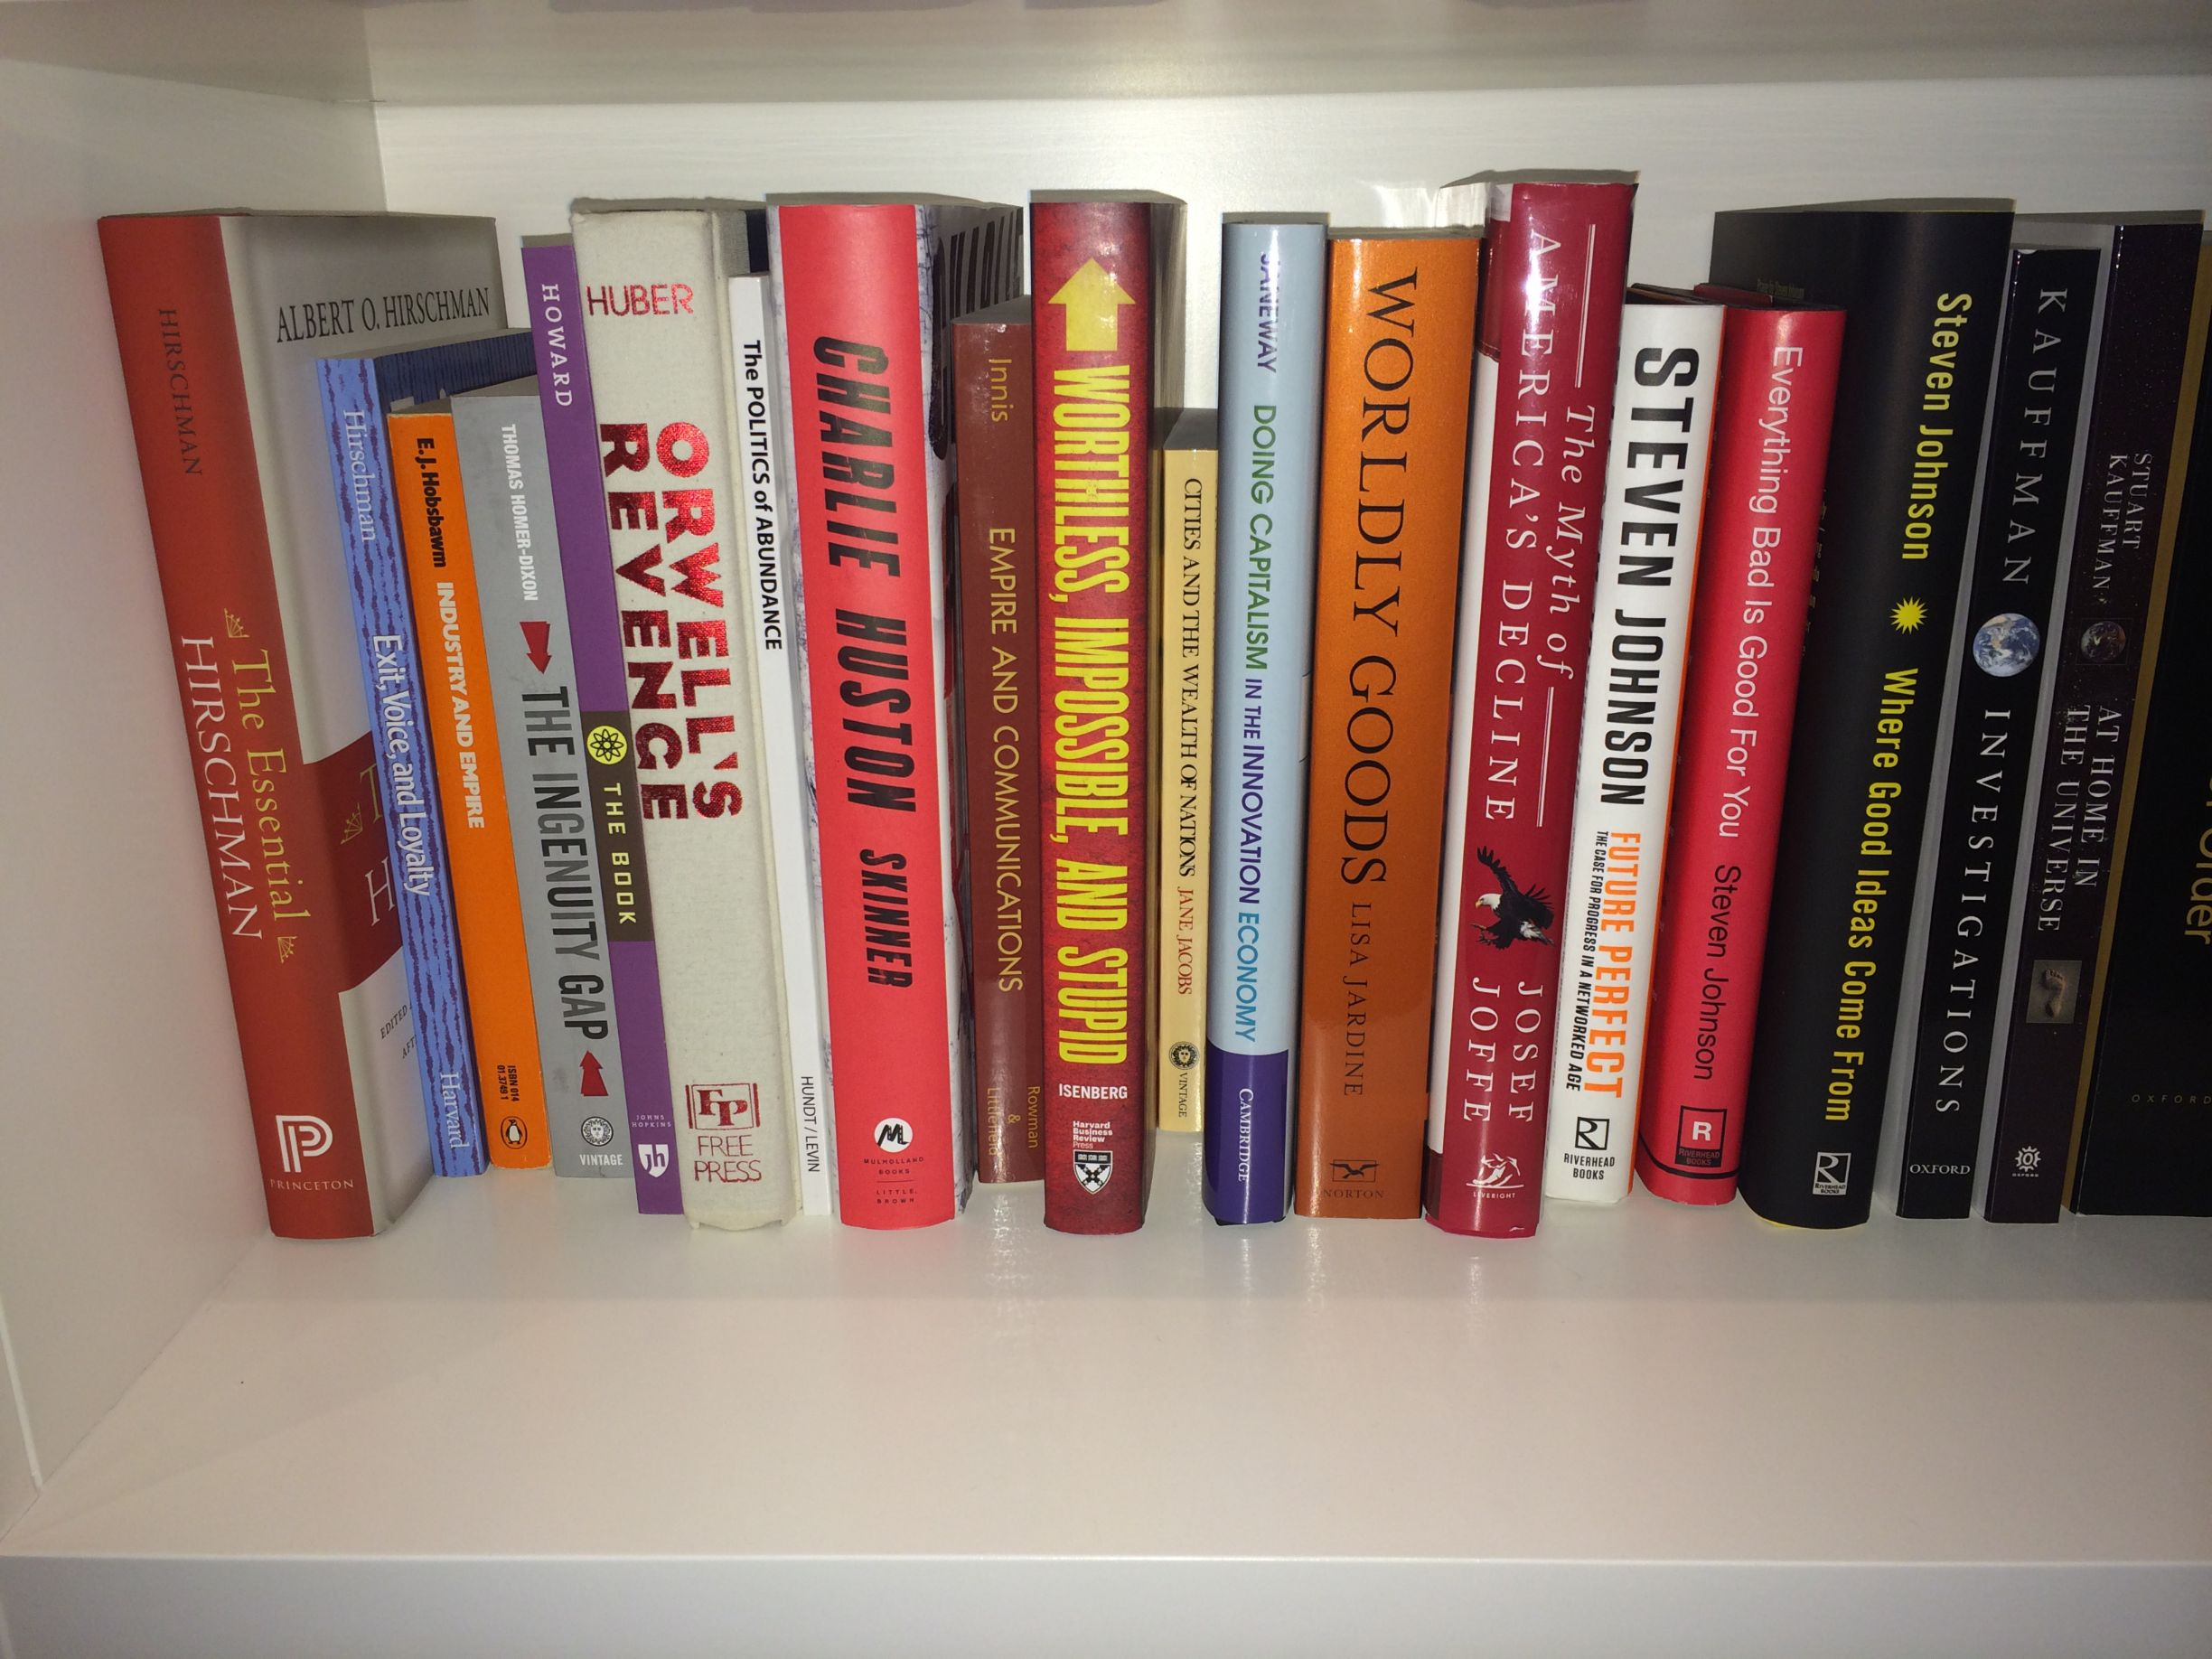 Some noted early adopters, such as investor Marc Andreessen, have uploaded pictures of their bookshelves.